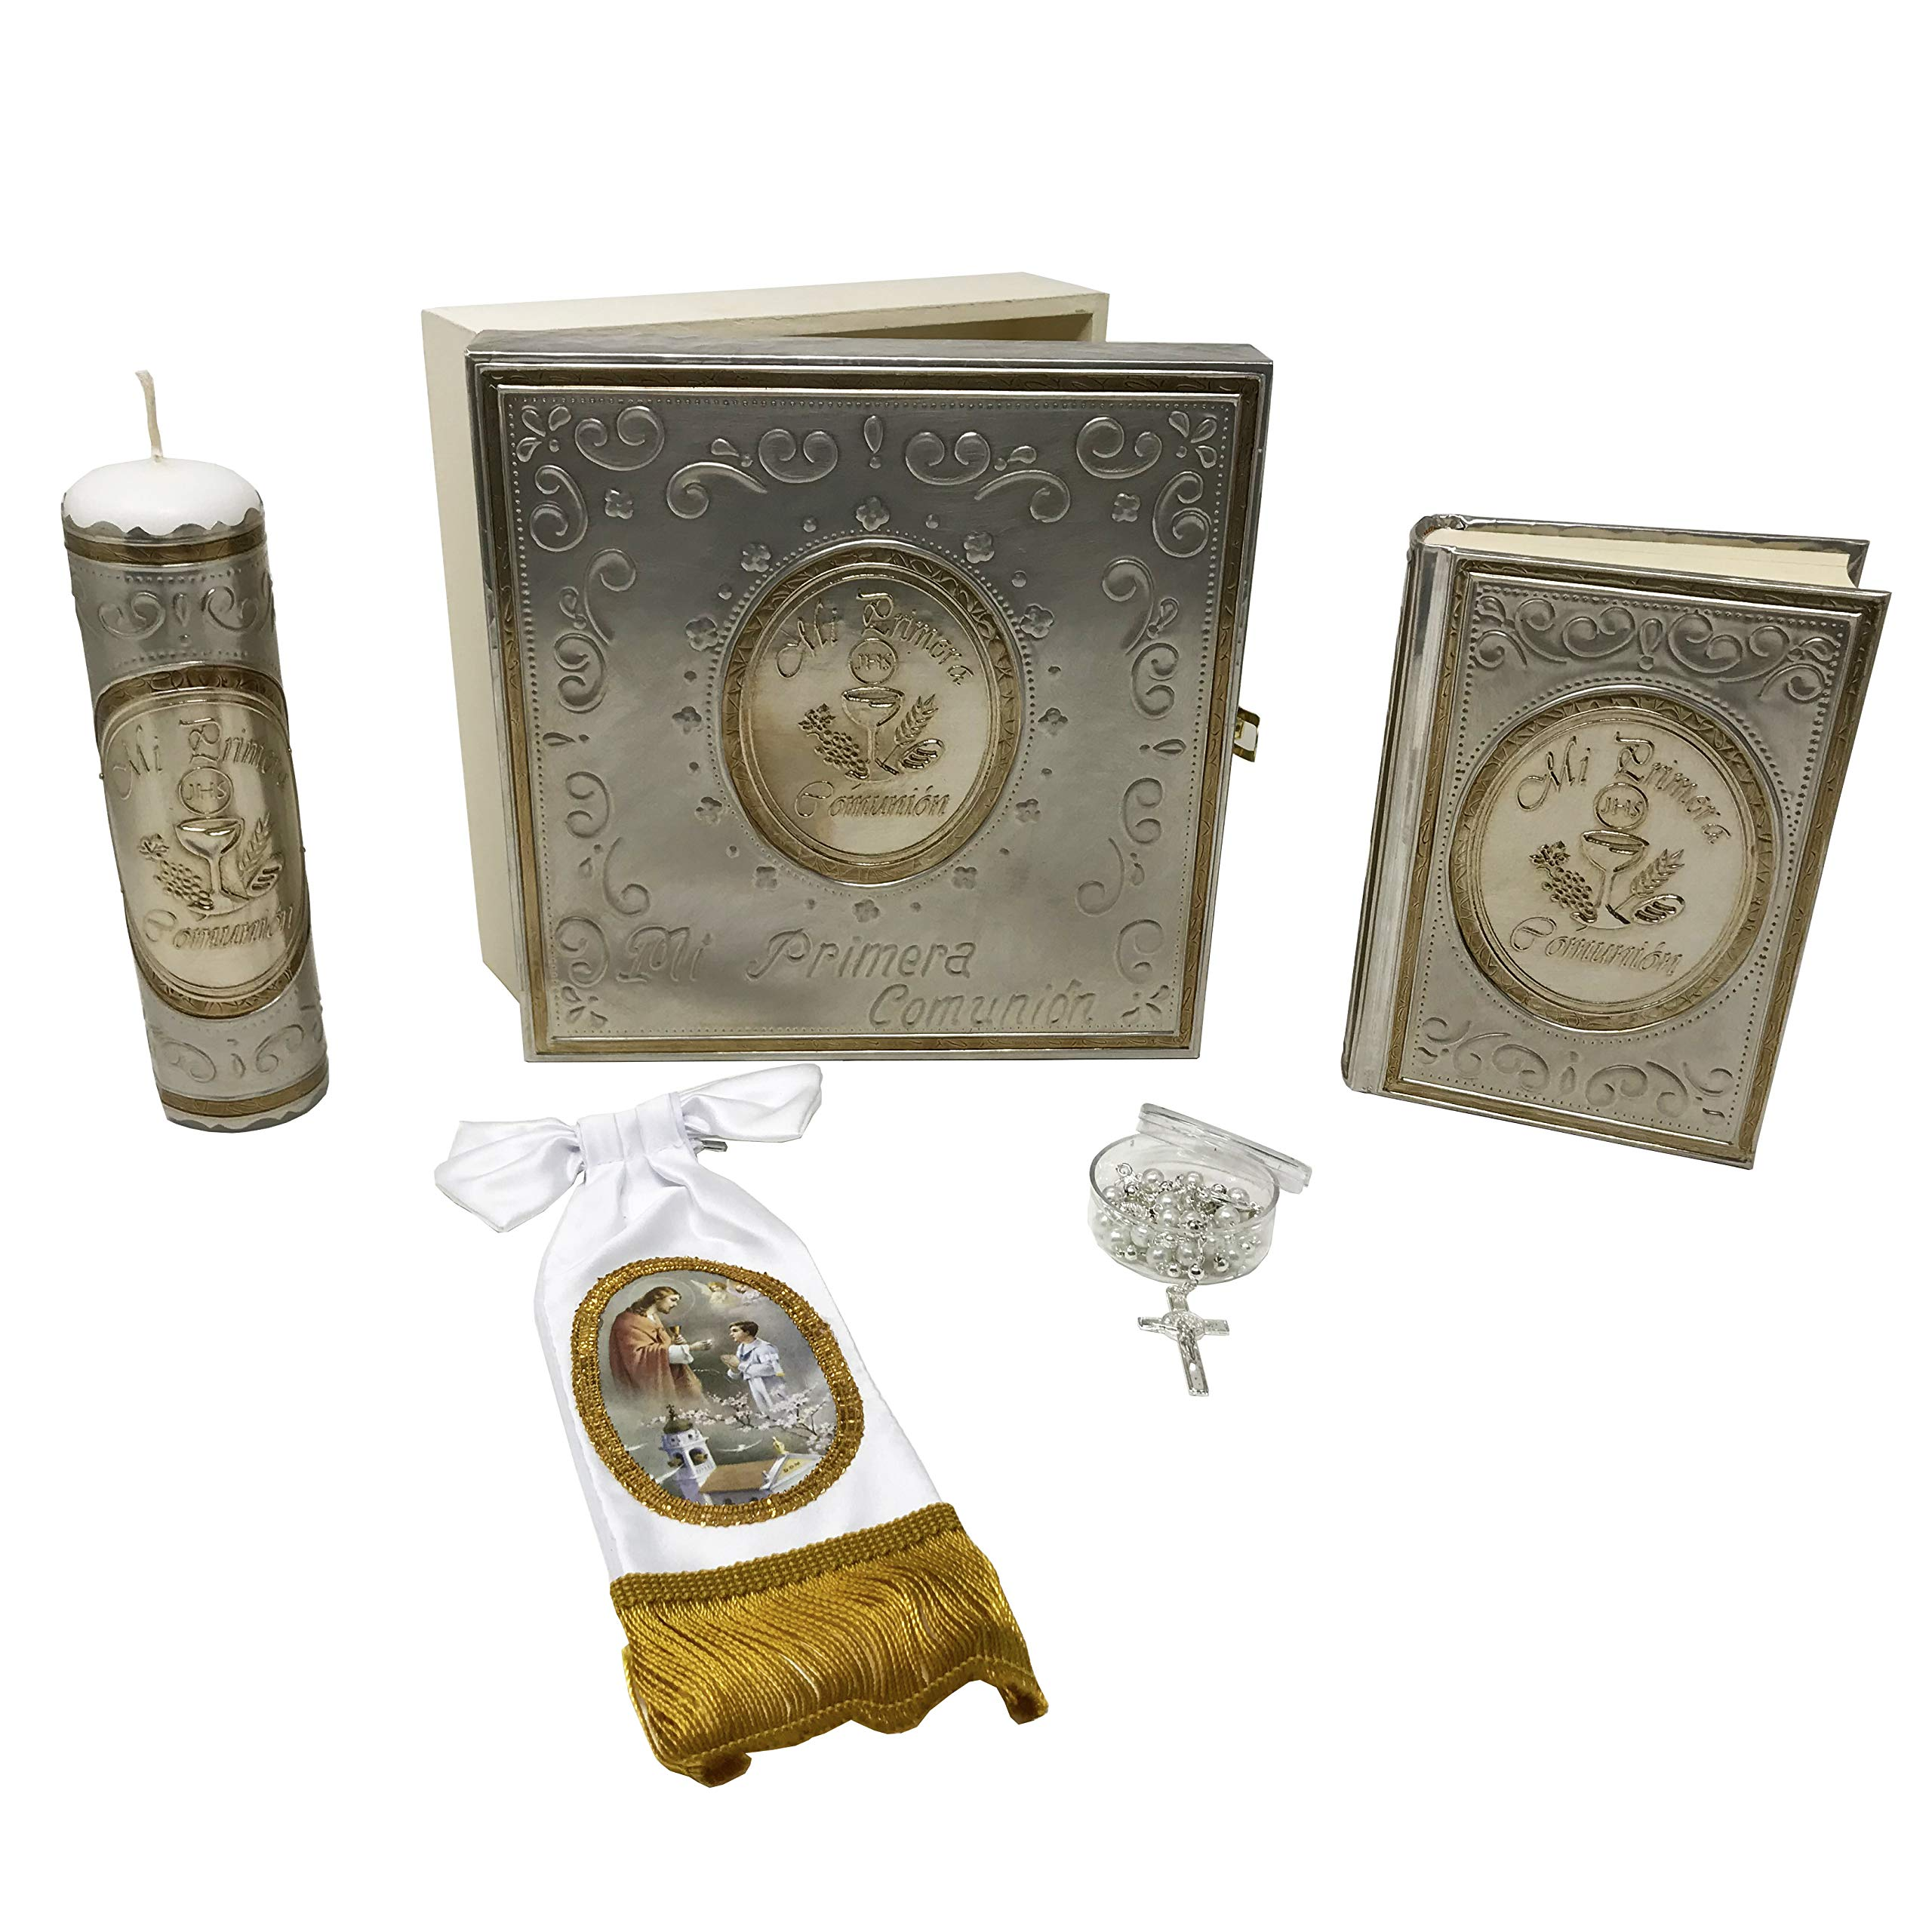 PREMIUM Catholic First Communion Kit in a Repujado Box with Candle, Rosary, Bible (Spanish) and Arm Bow Bracelet for Boys. Handmade in Mexico Gift for Godparents. Kit de Primera Comunión.